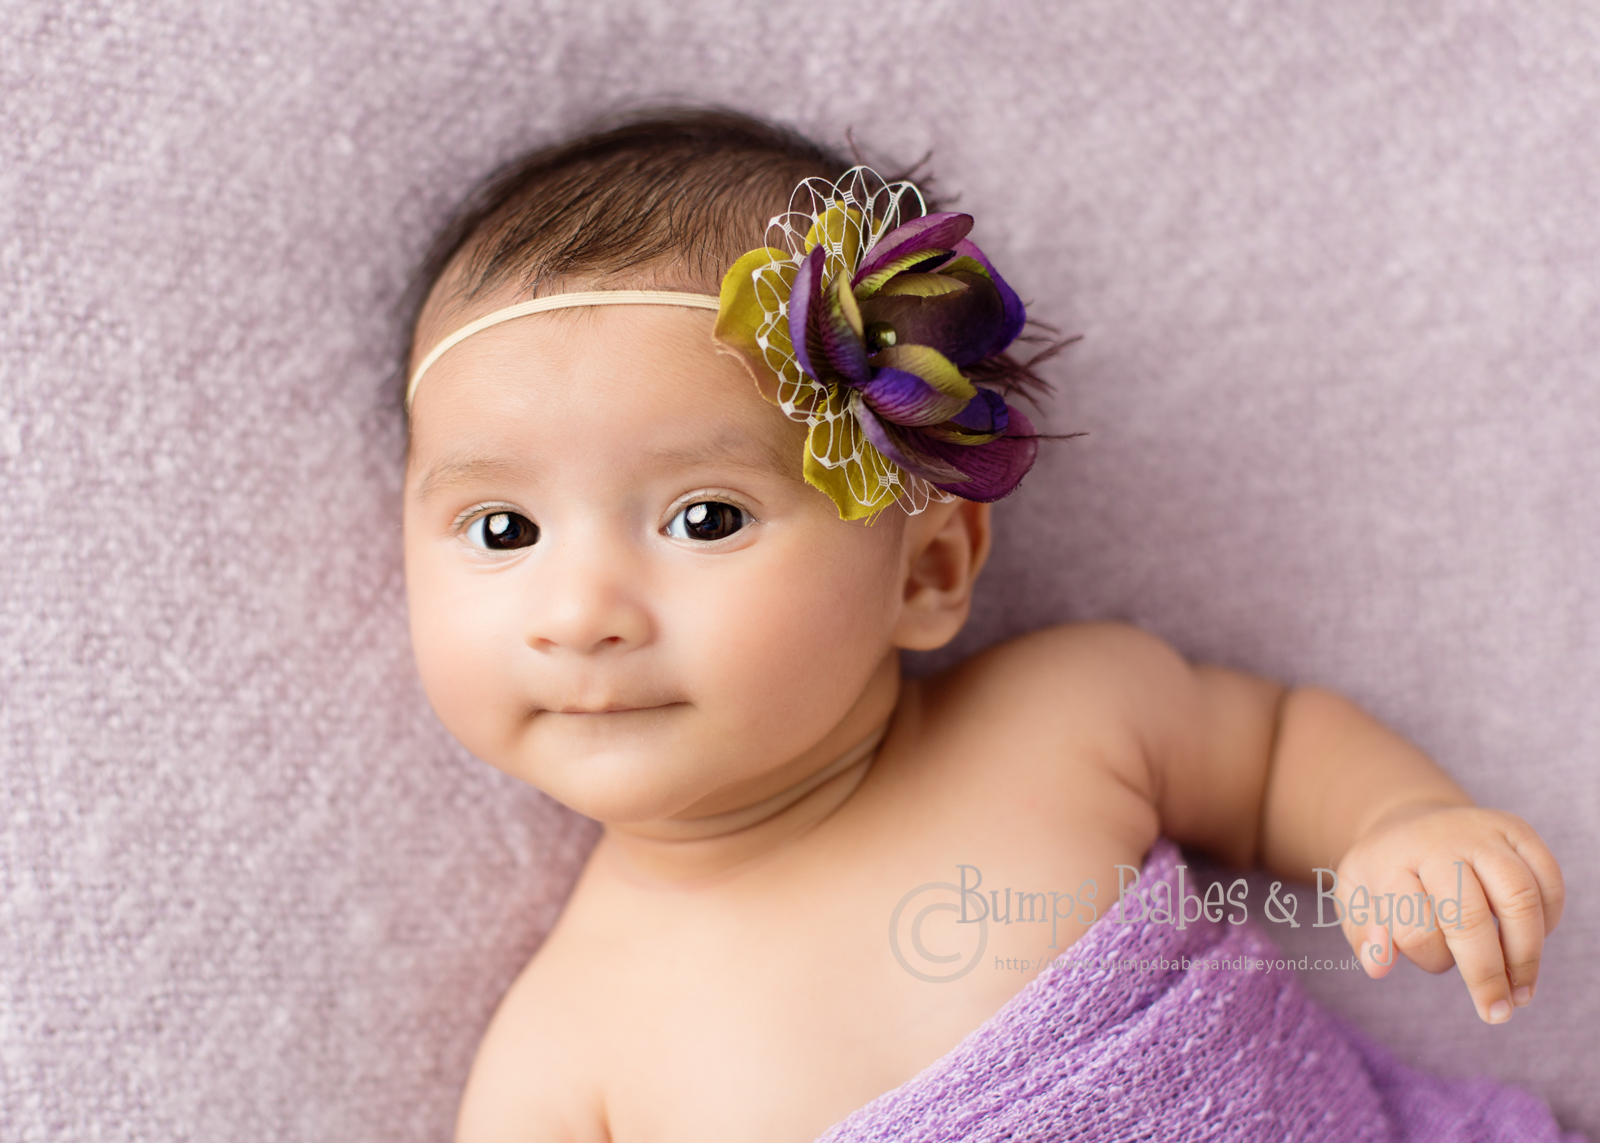 Baby-photography-01